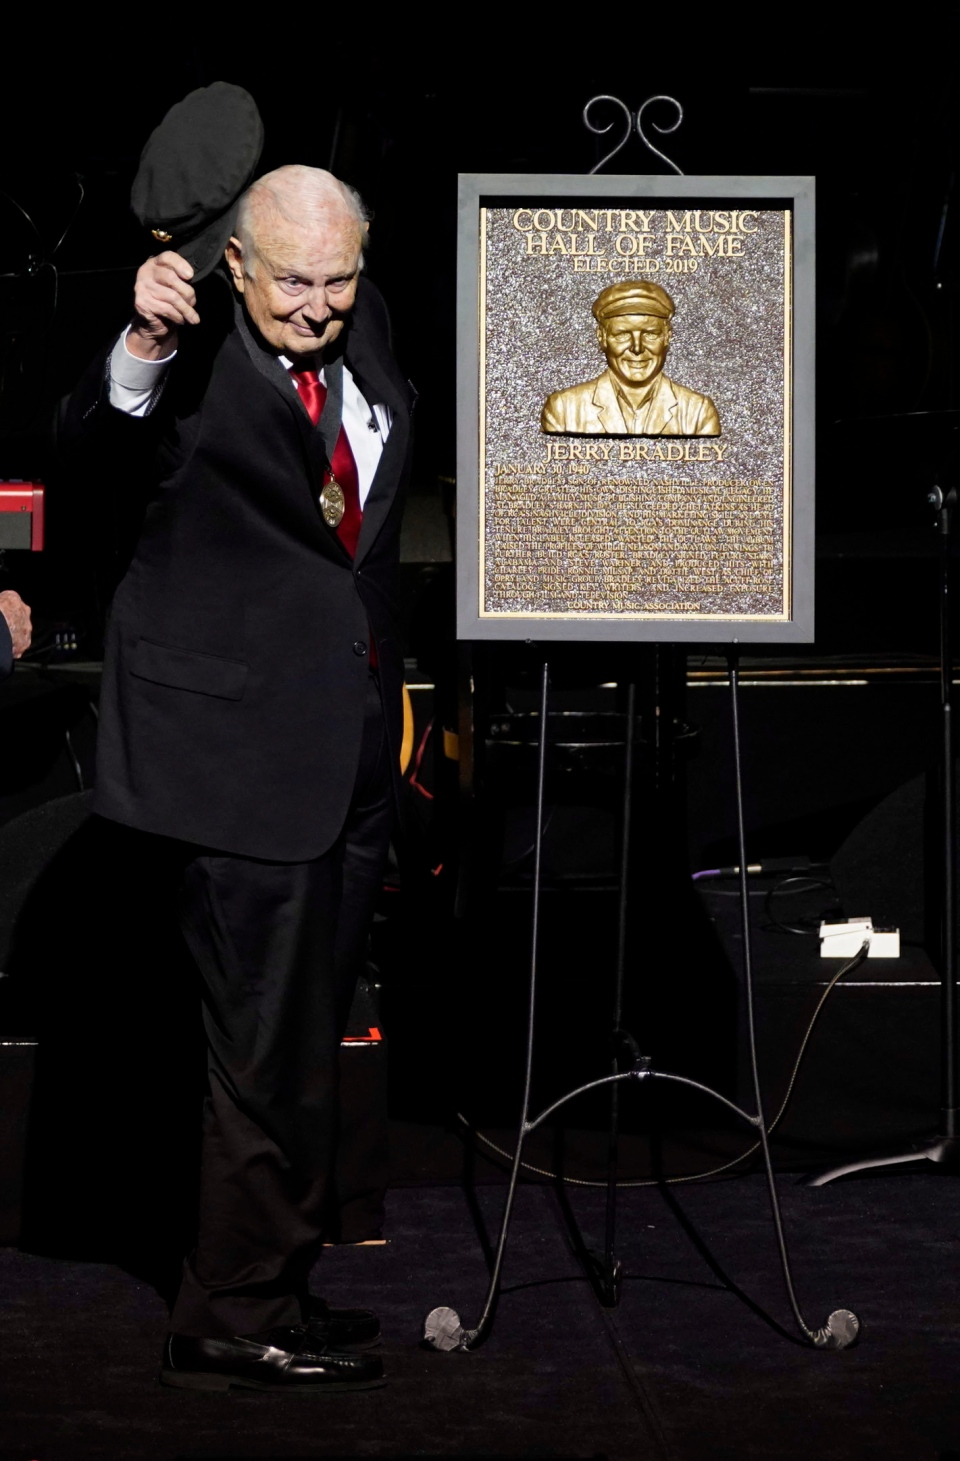 Jerry Bradley gives a tip of the hat after being inducted into the Country Music Hall of Fame during the 2019 Medallion Ceremony at the Country Music Hall of Fame and Museum on Sunday, Oct. 20, 2019 in Nashville, Tenn. (Photo by Sanford Myers/Invision/AP)